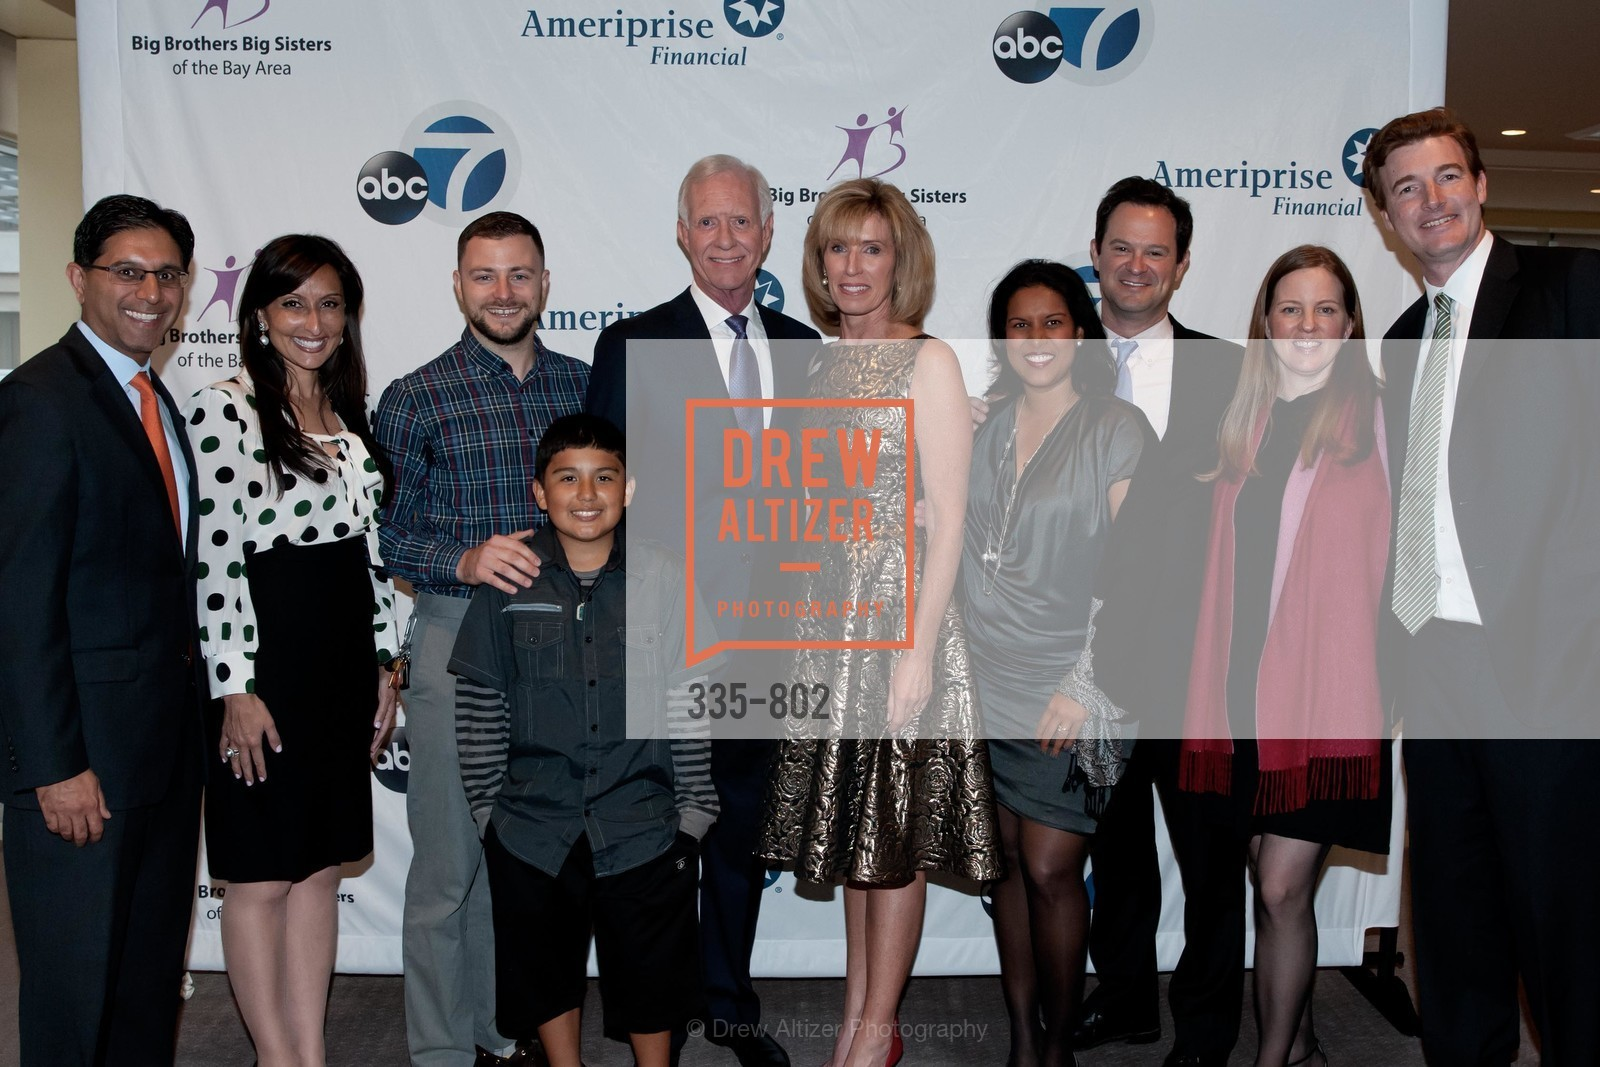 Rajat Duggal, Shefali Razdan Duggal, Sully Sullenberger, Lorrie Sullenberger, MR PORTER Celebrate The San Francisco Issue of The Journal, US, April 24th, 2015,Drew Altizer, Drew Altizer Photography, full-service event agency, private events, San Francisco photographer, photographer California